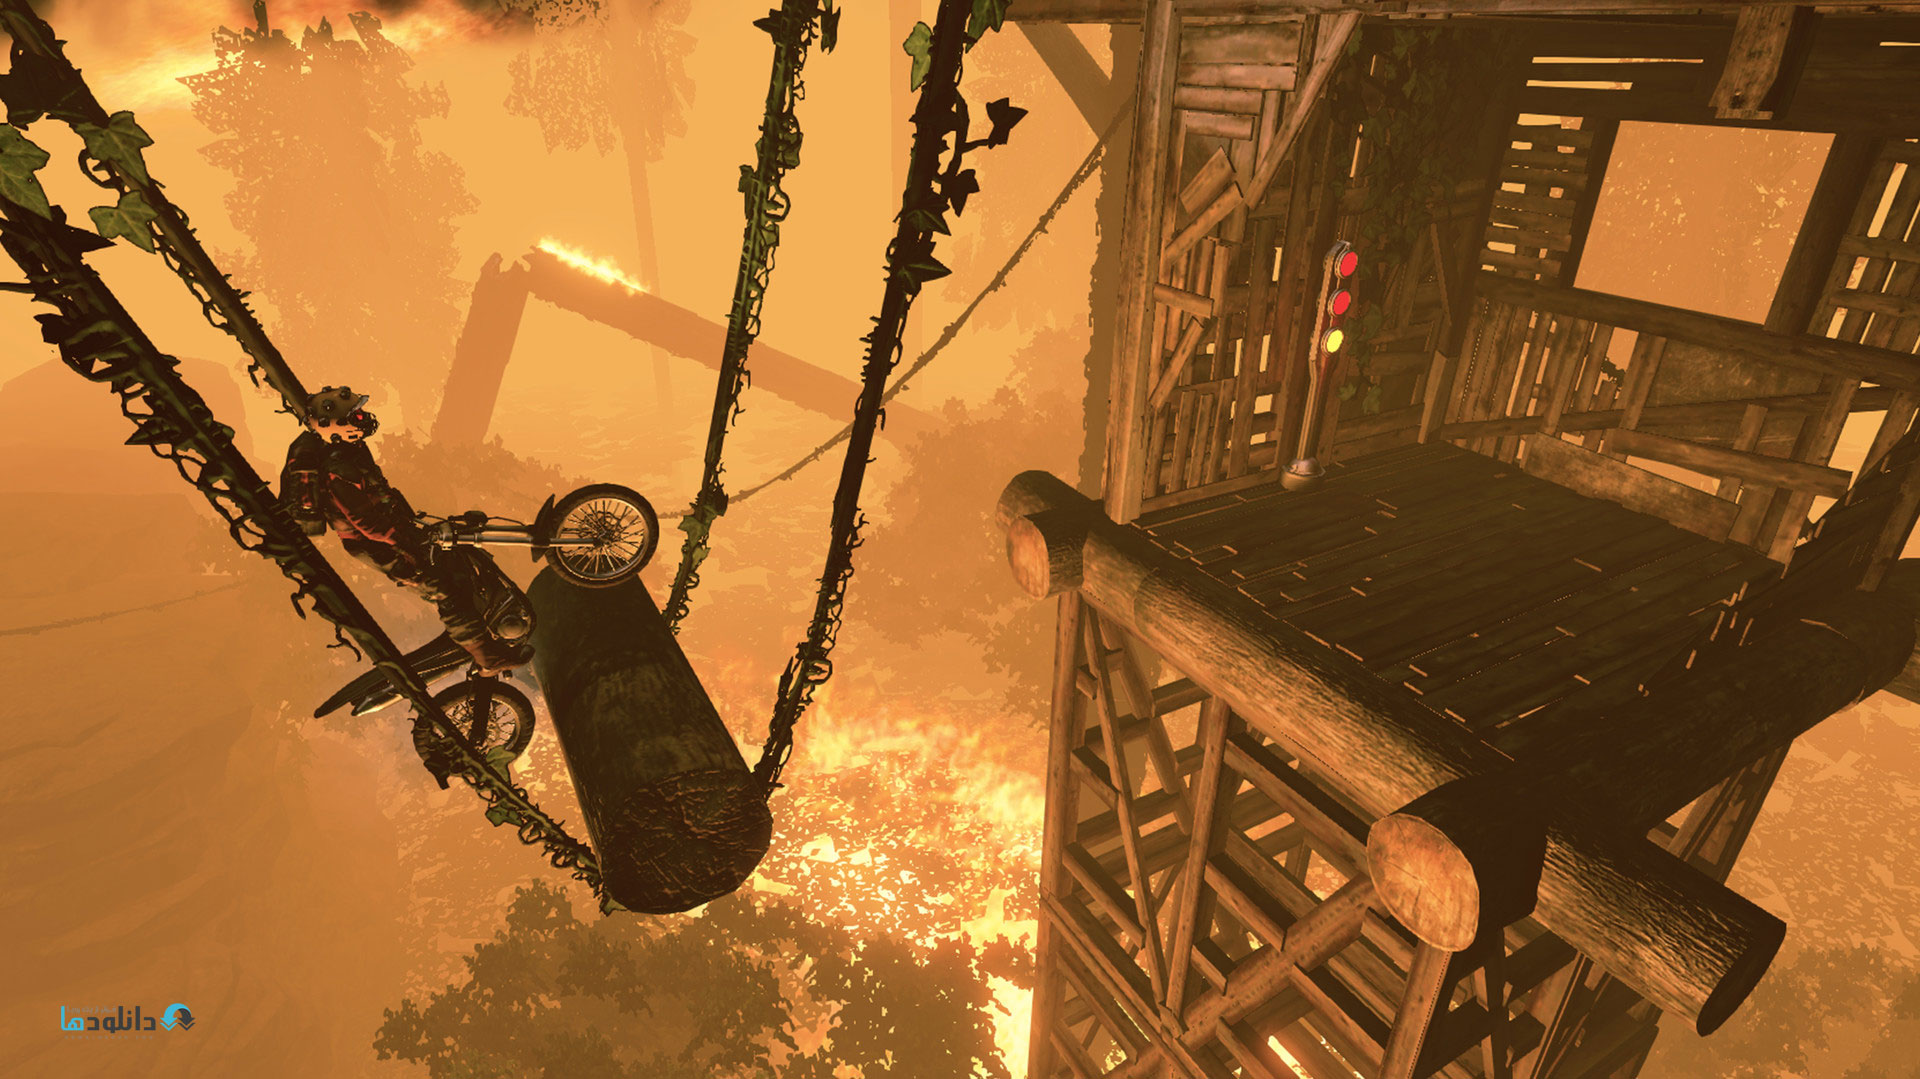 http://img5.downloadha.com/hosein/Game/April%202015/01/Trials-Fusion-After-the-Incident-screenshots-01-large.jpg